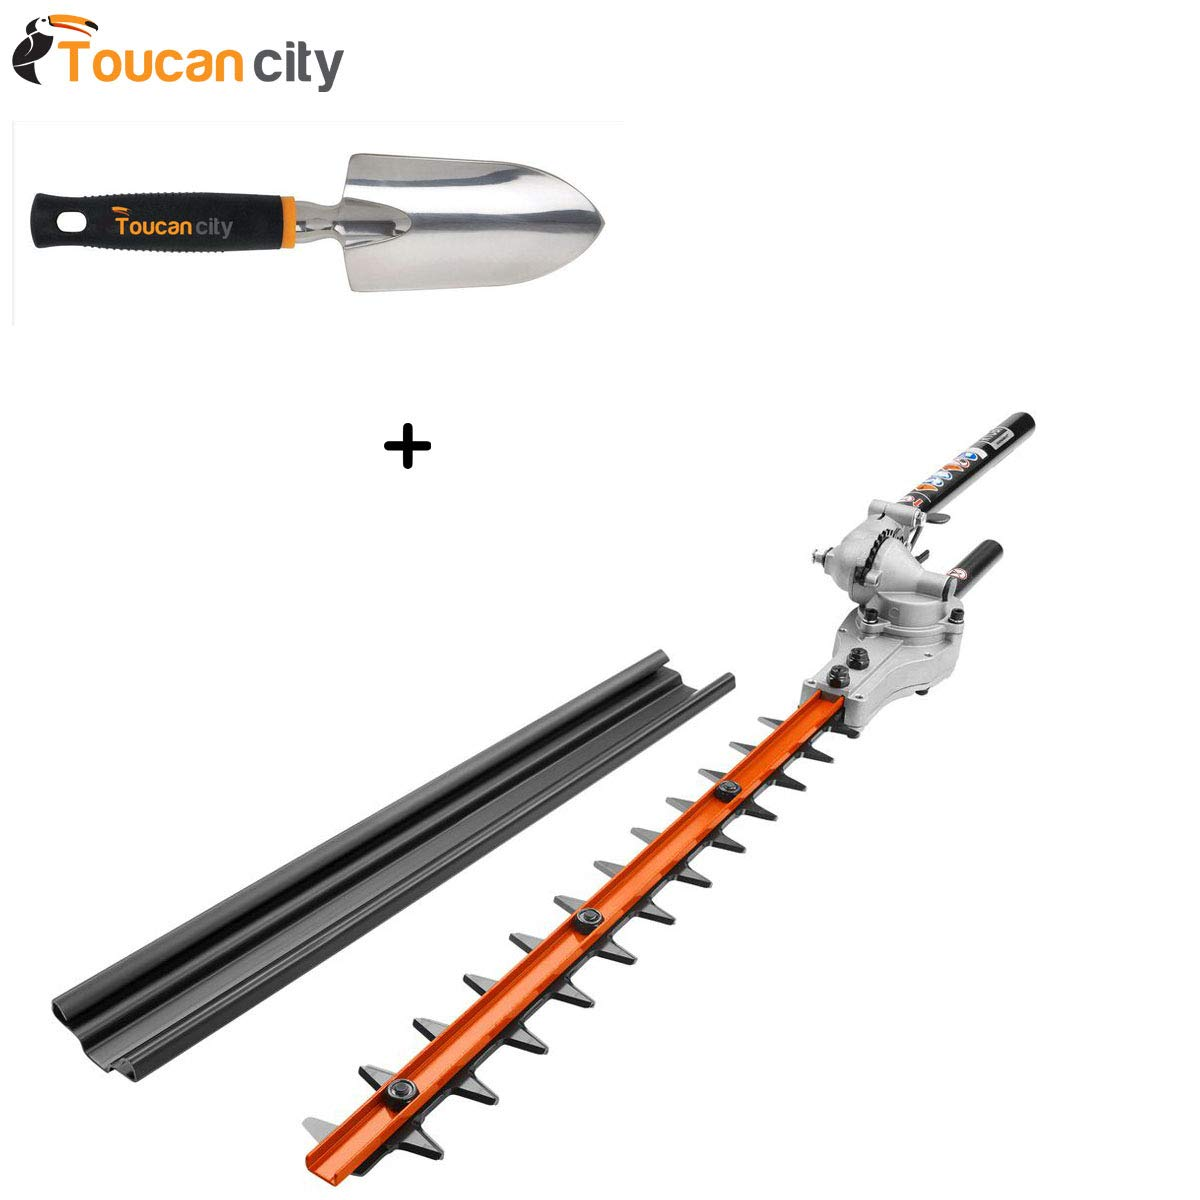 Toucan City Softouch Hand Trowel and Ryobi Expand-It 15 in. Articulating Hedge Trimmer Attachment RYAHT99